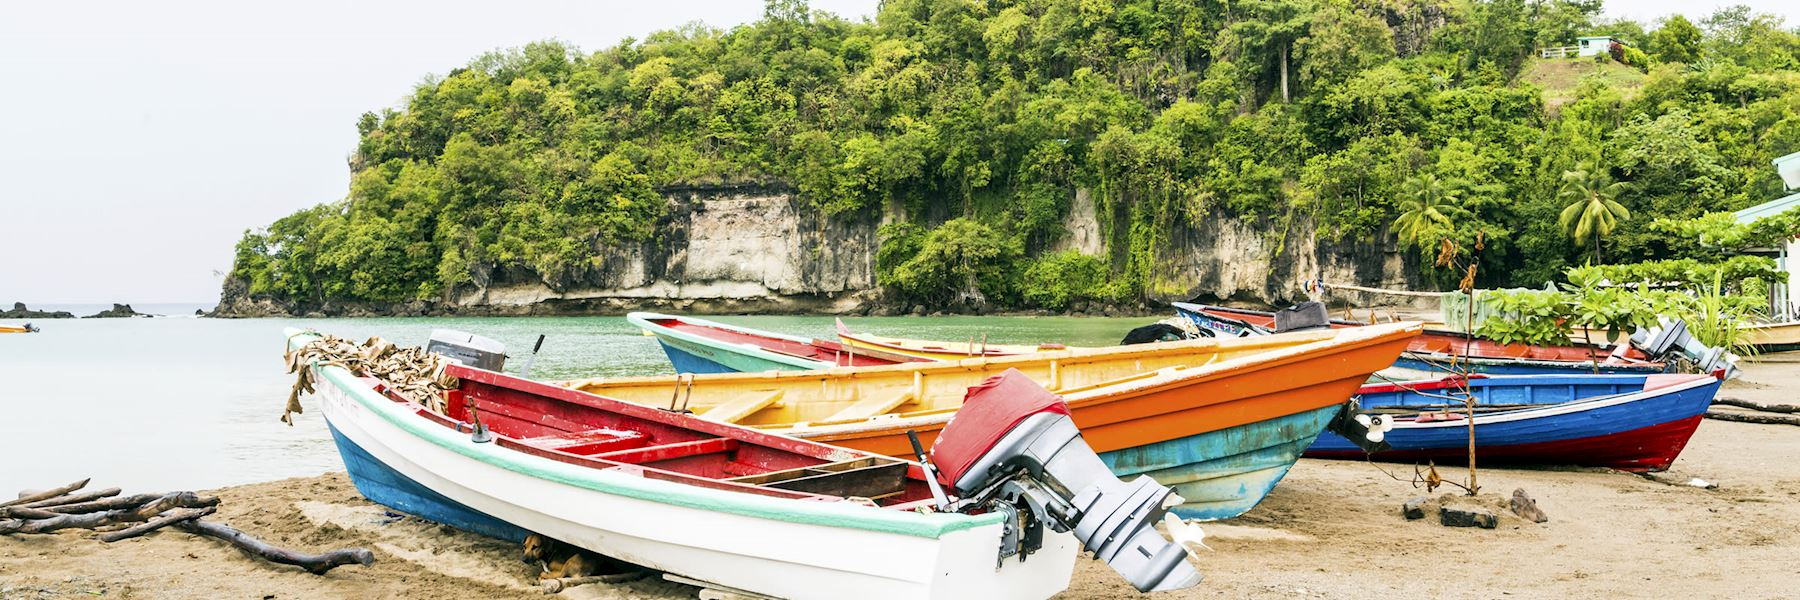 When is the best time to visit Saint Lucia?